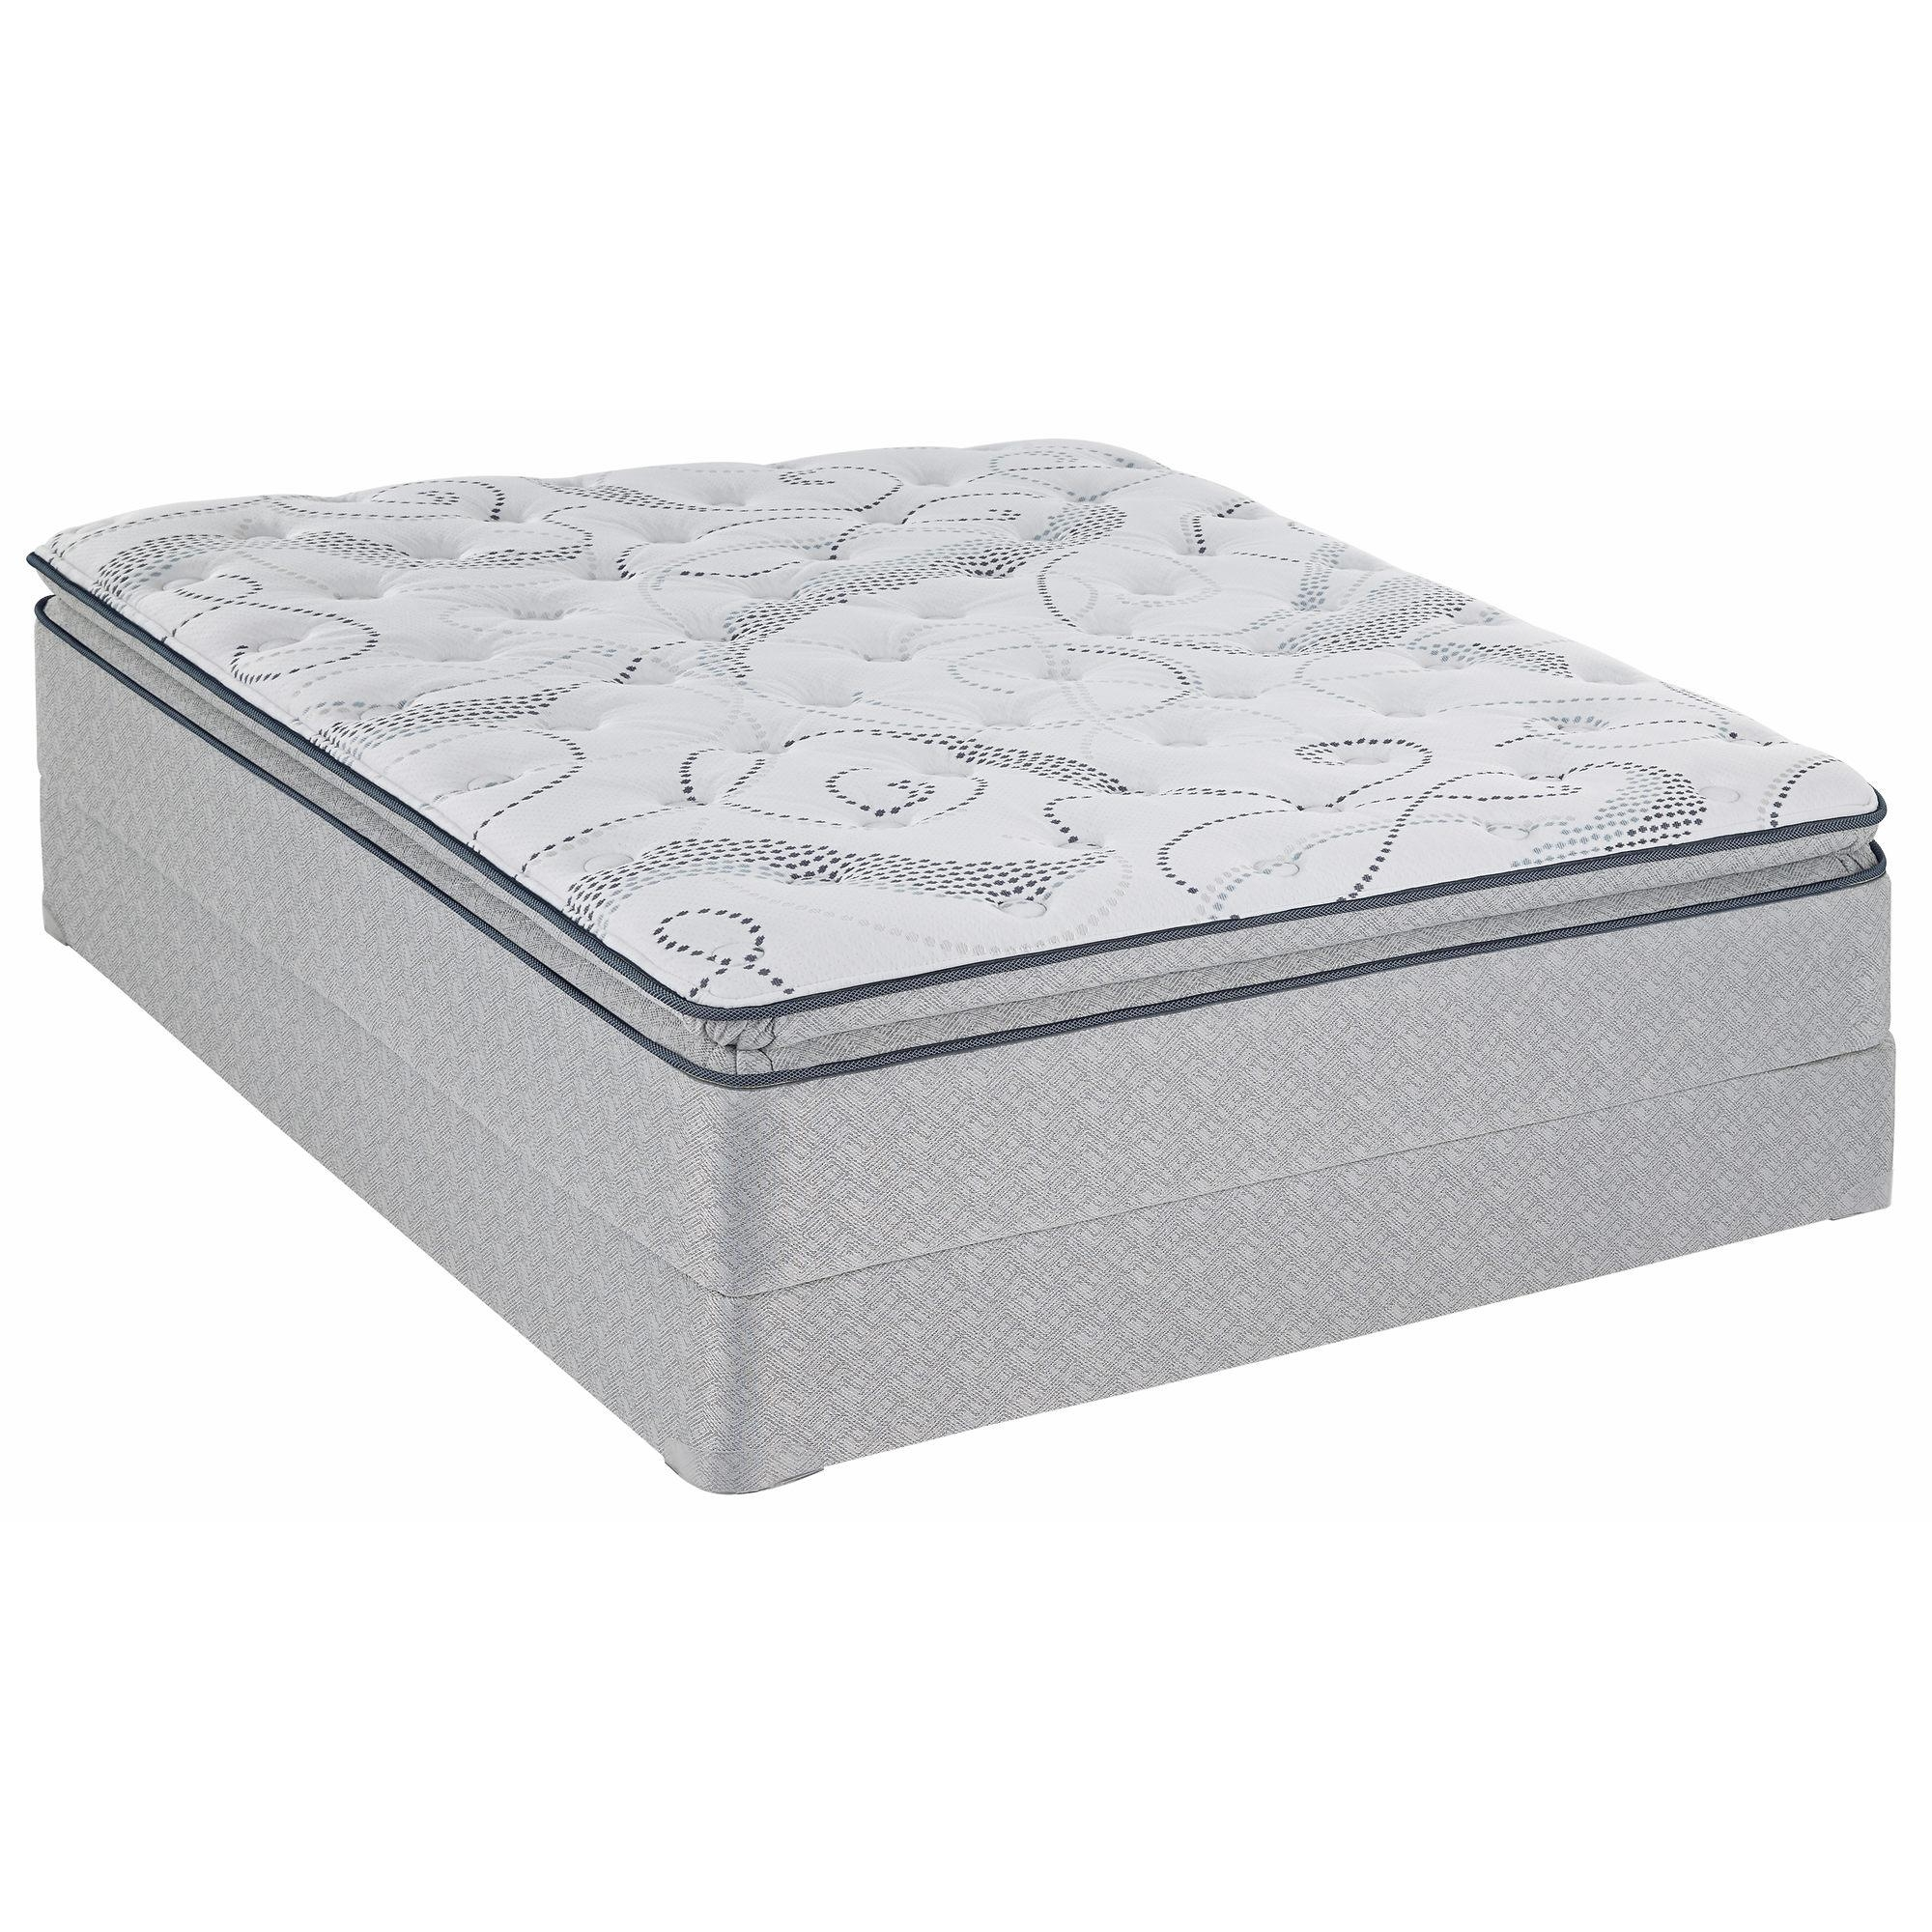 Queen Mattress And Box Spring Dimensions | Vertigino Mattress regarding Queen Mattress Sets